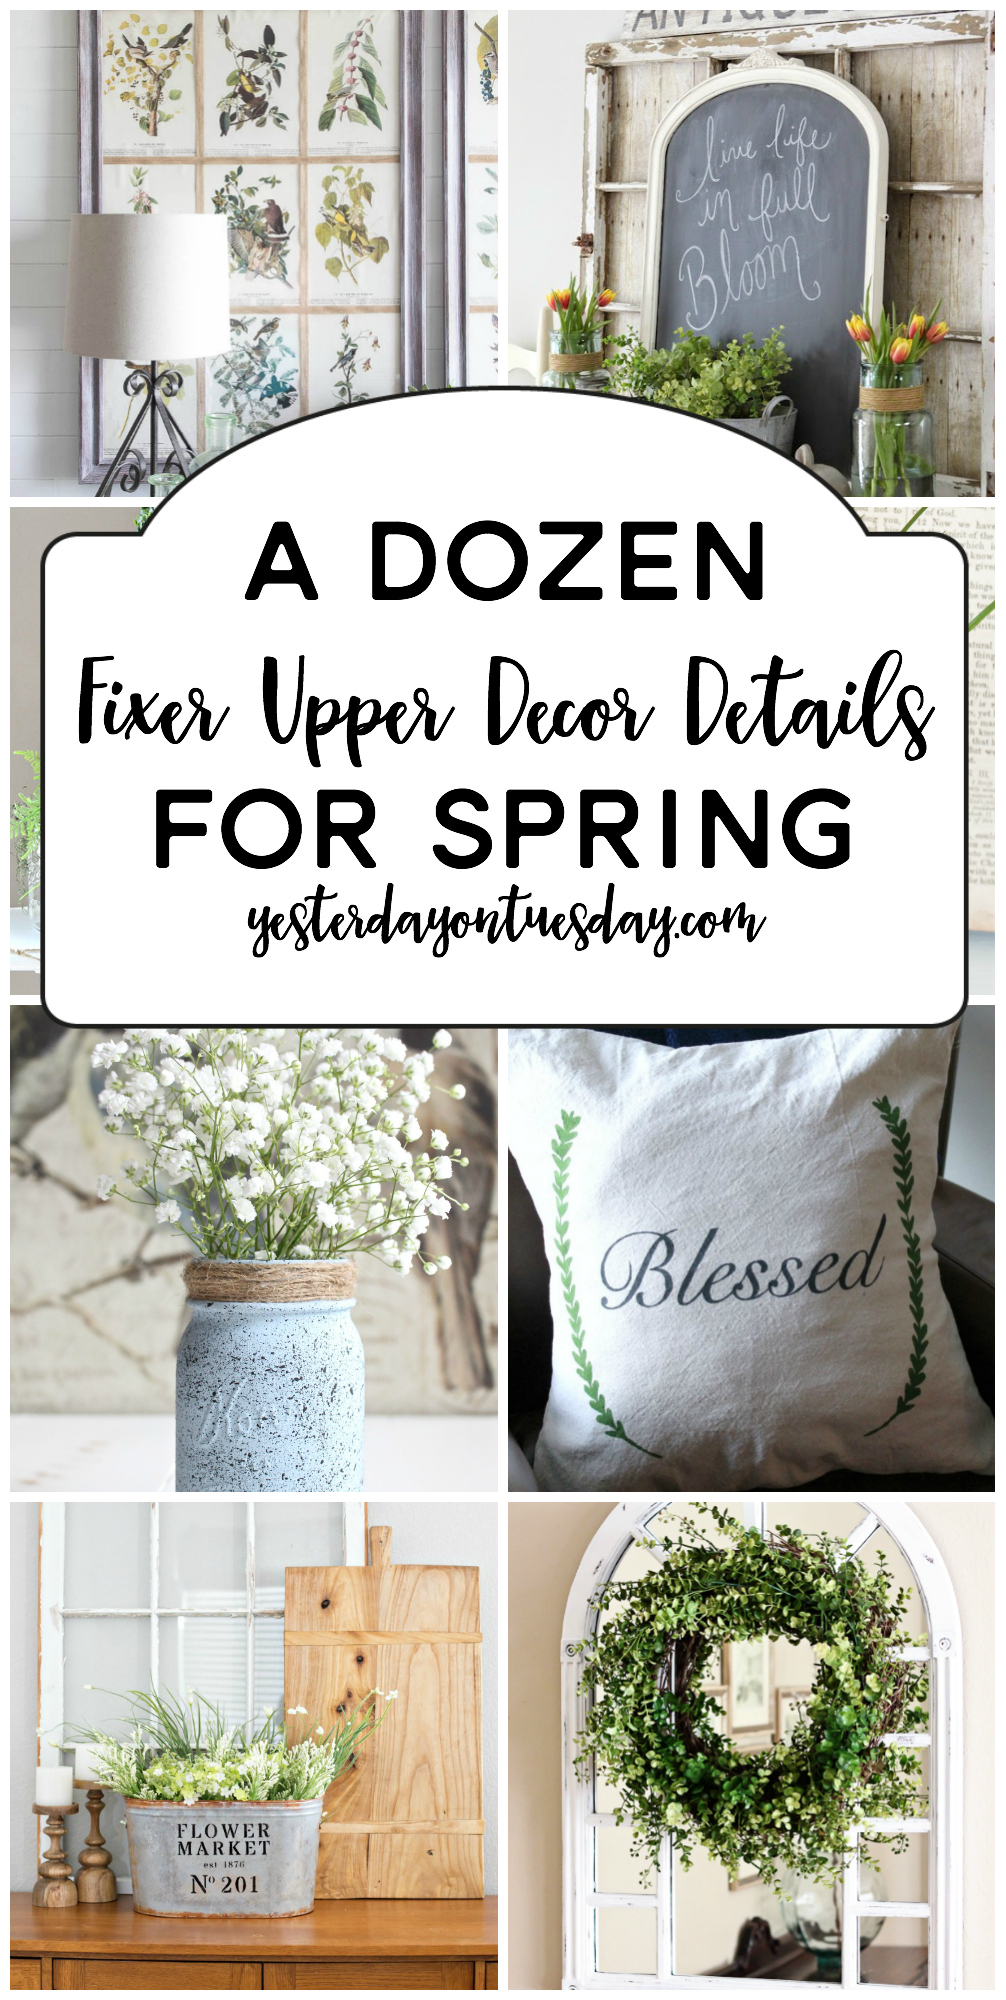 A Dozen Fixer Upper Ideas for Spring